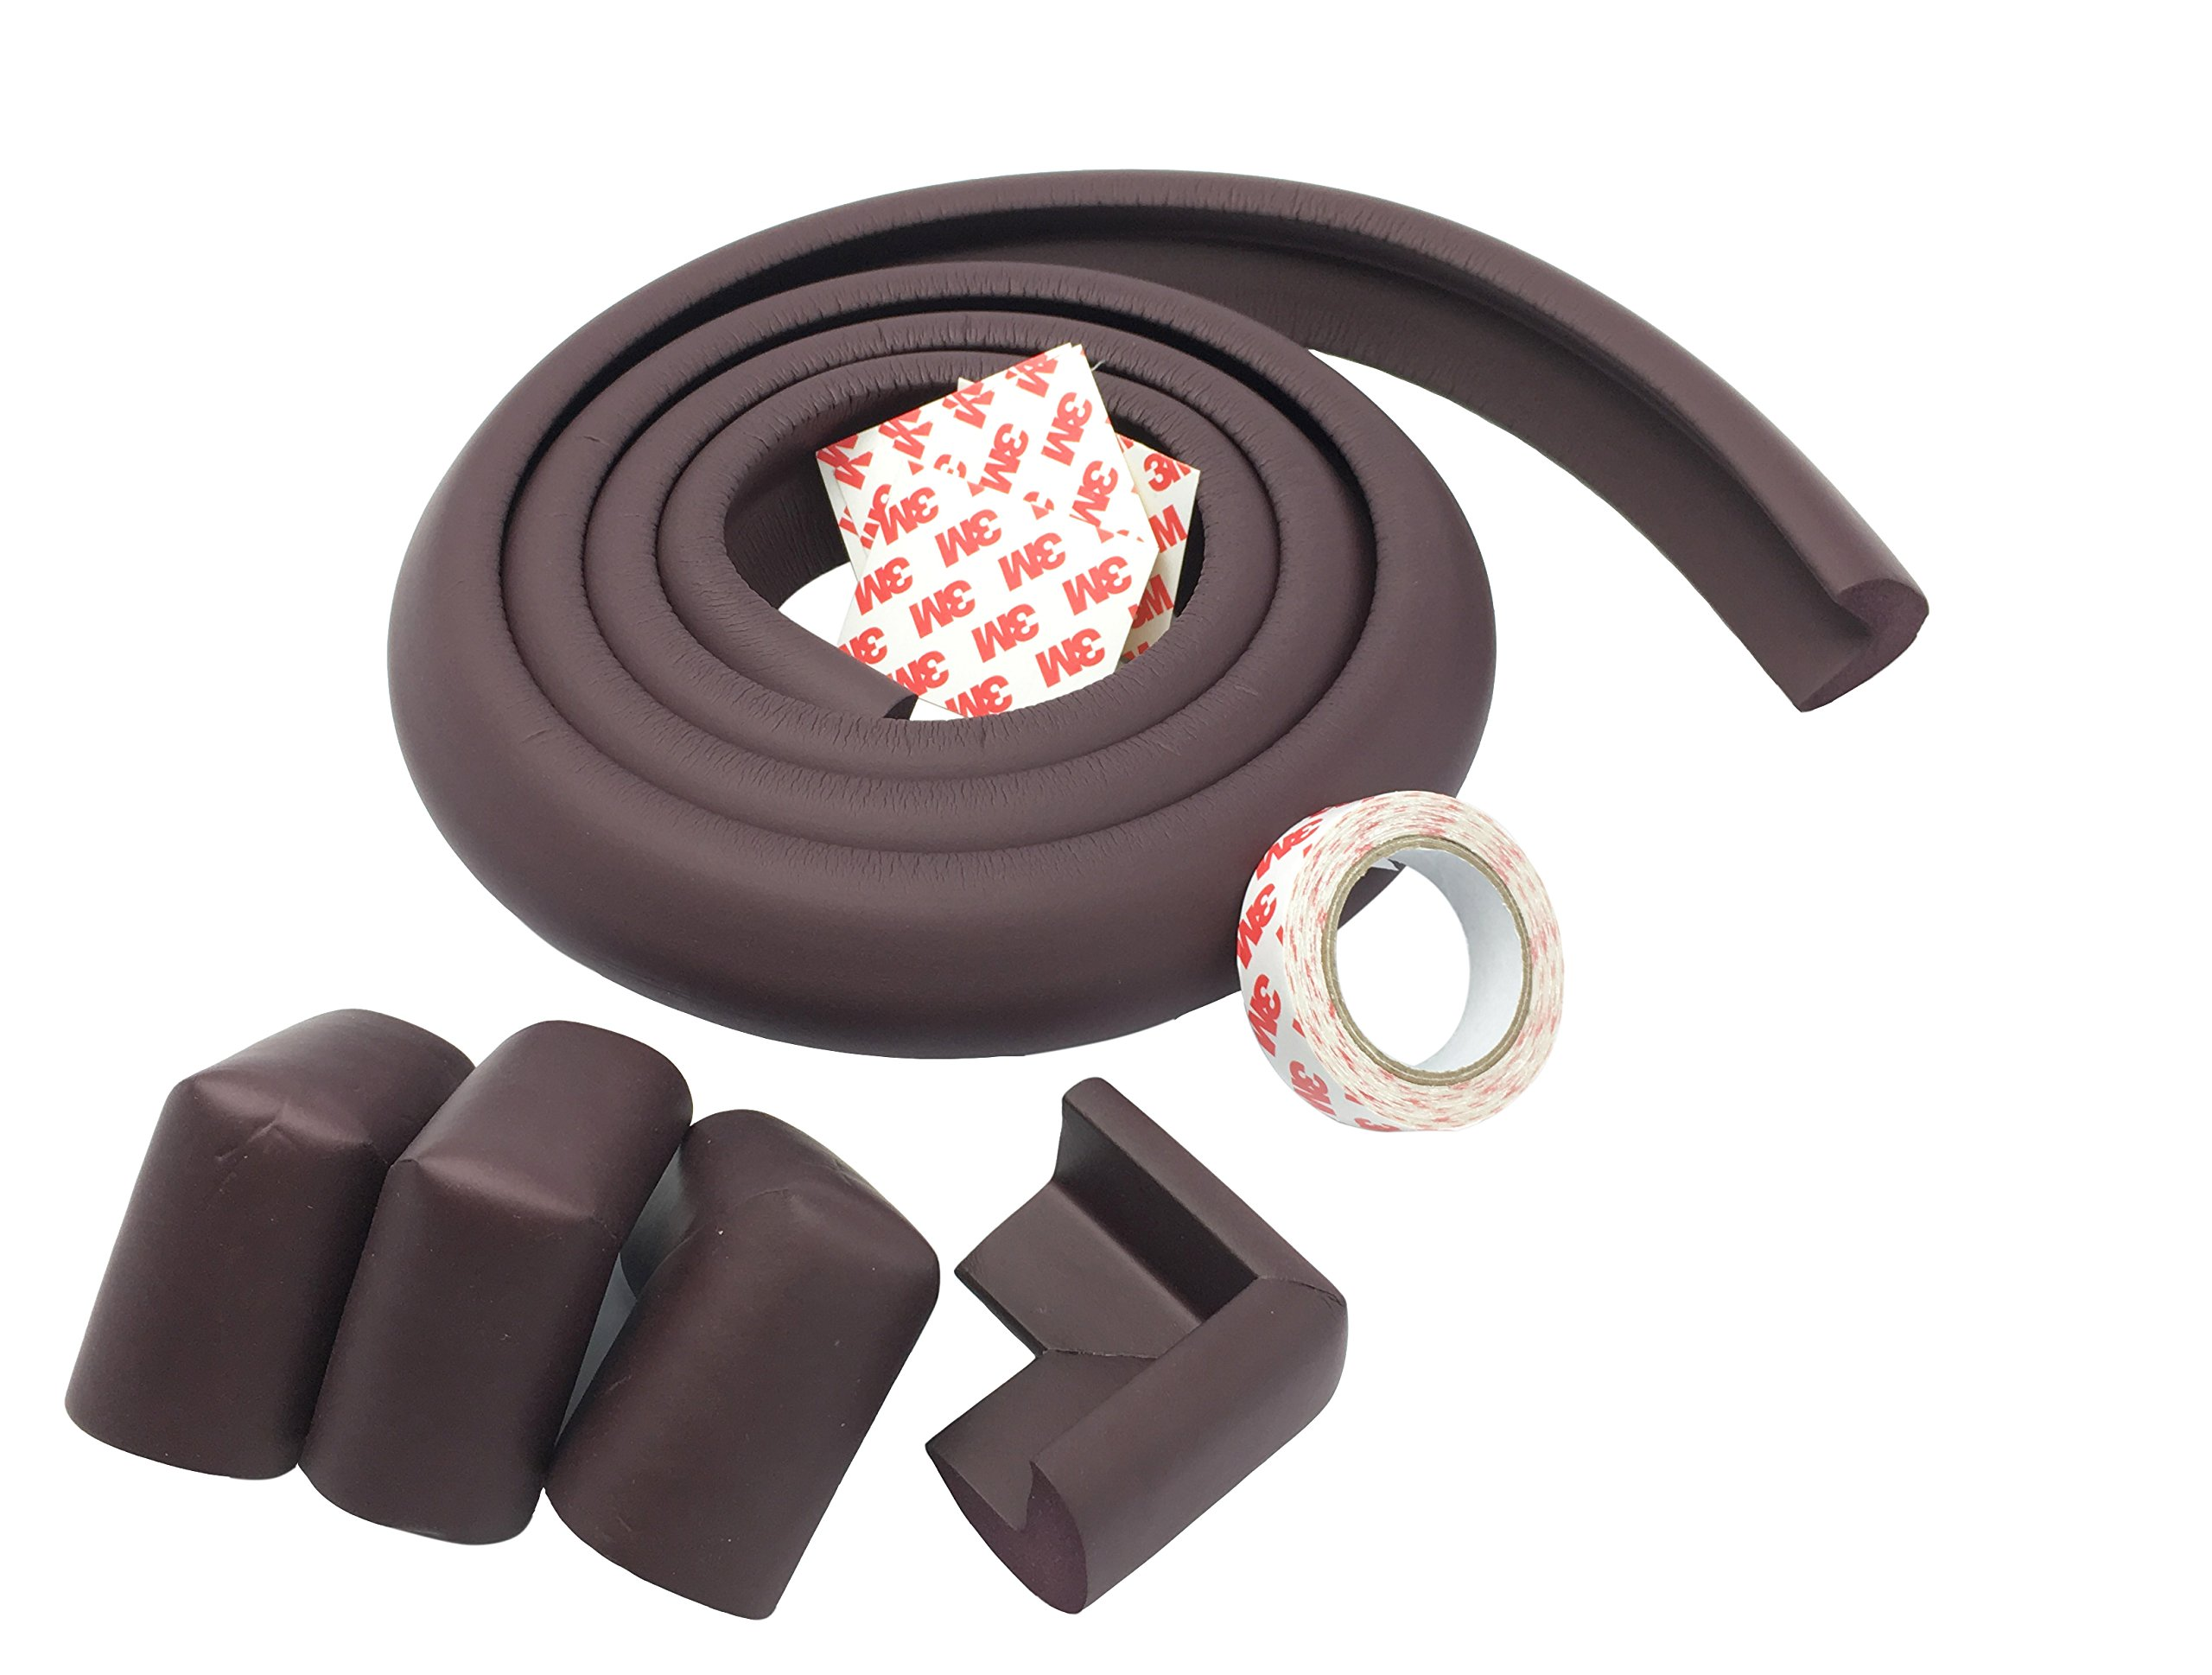 Foam High Density Furniture Table Edge Protector and Corner Protectors(Pack of 4) for Baby Safety Bumper Guard Set 6.5 Feet (2 Meter) (Brown)